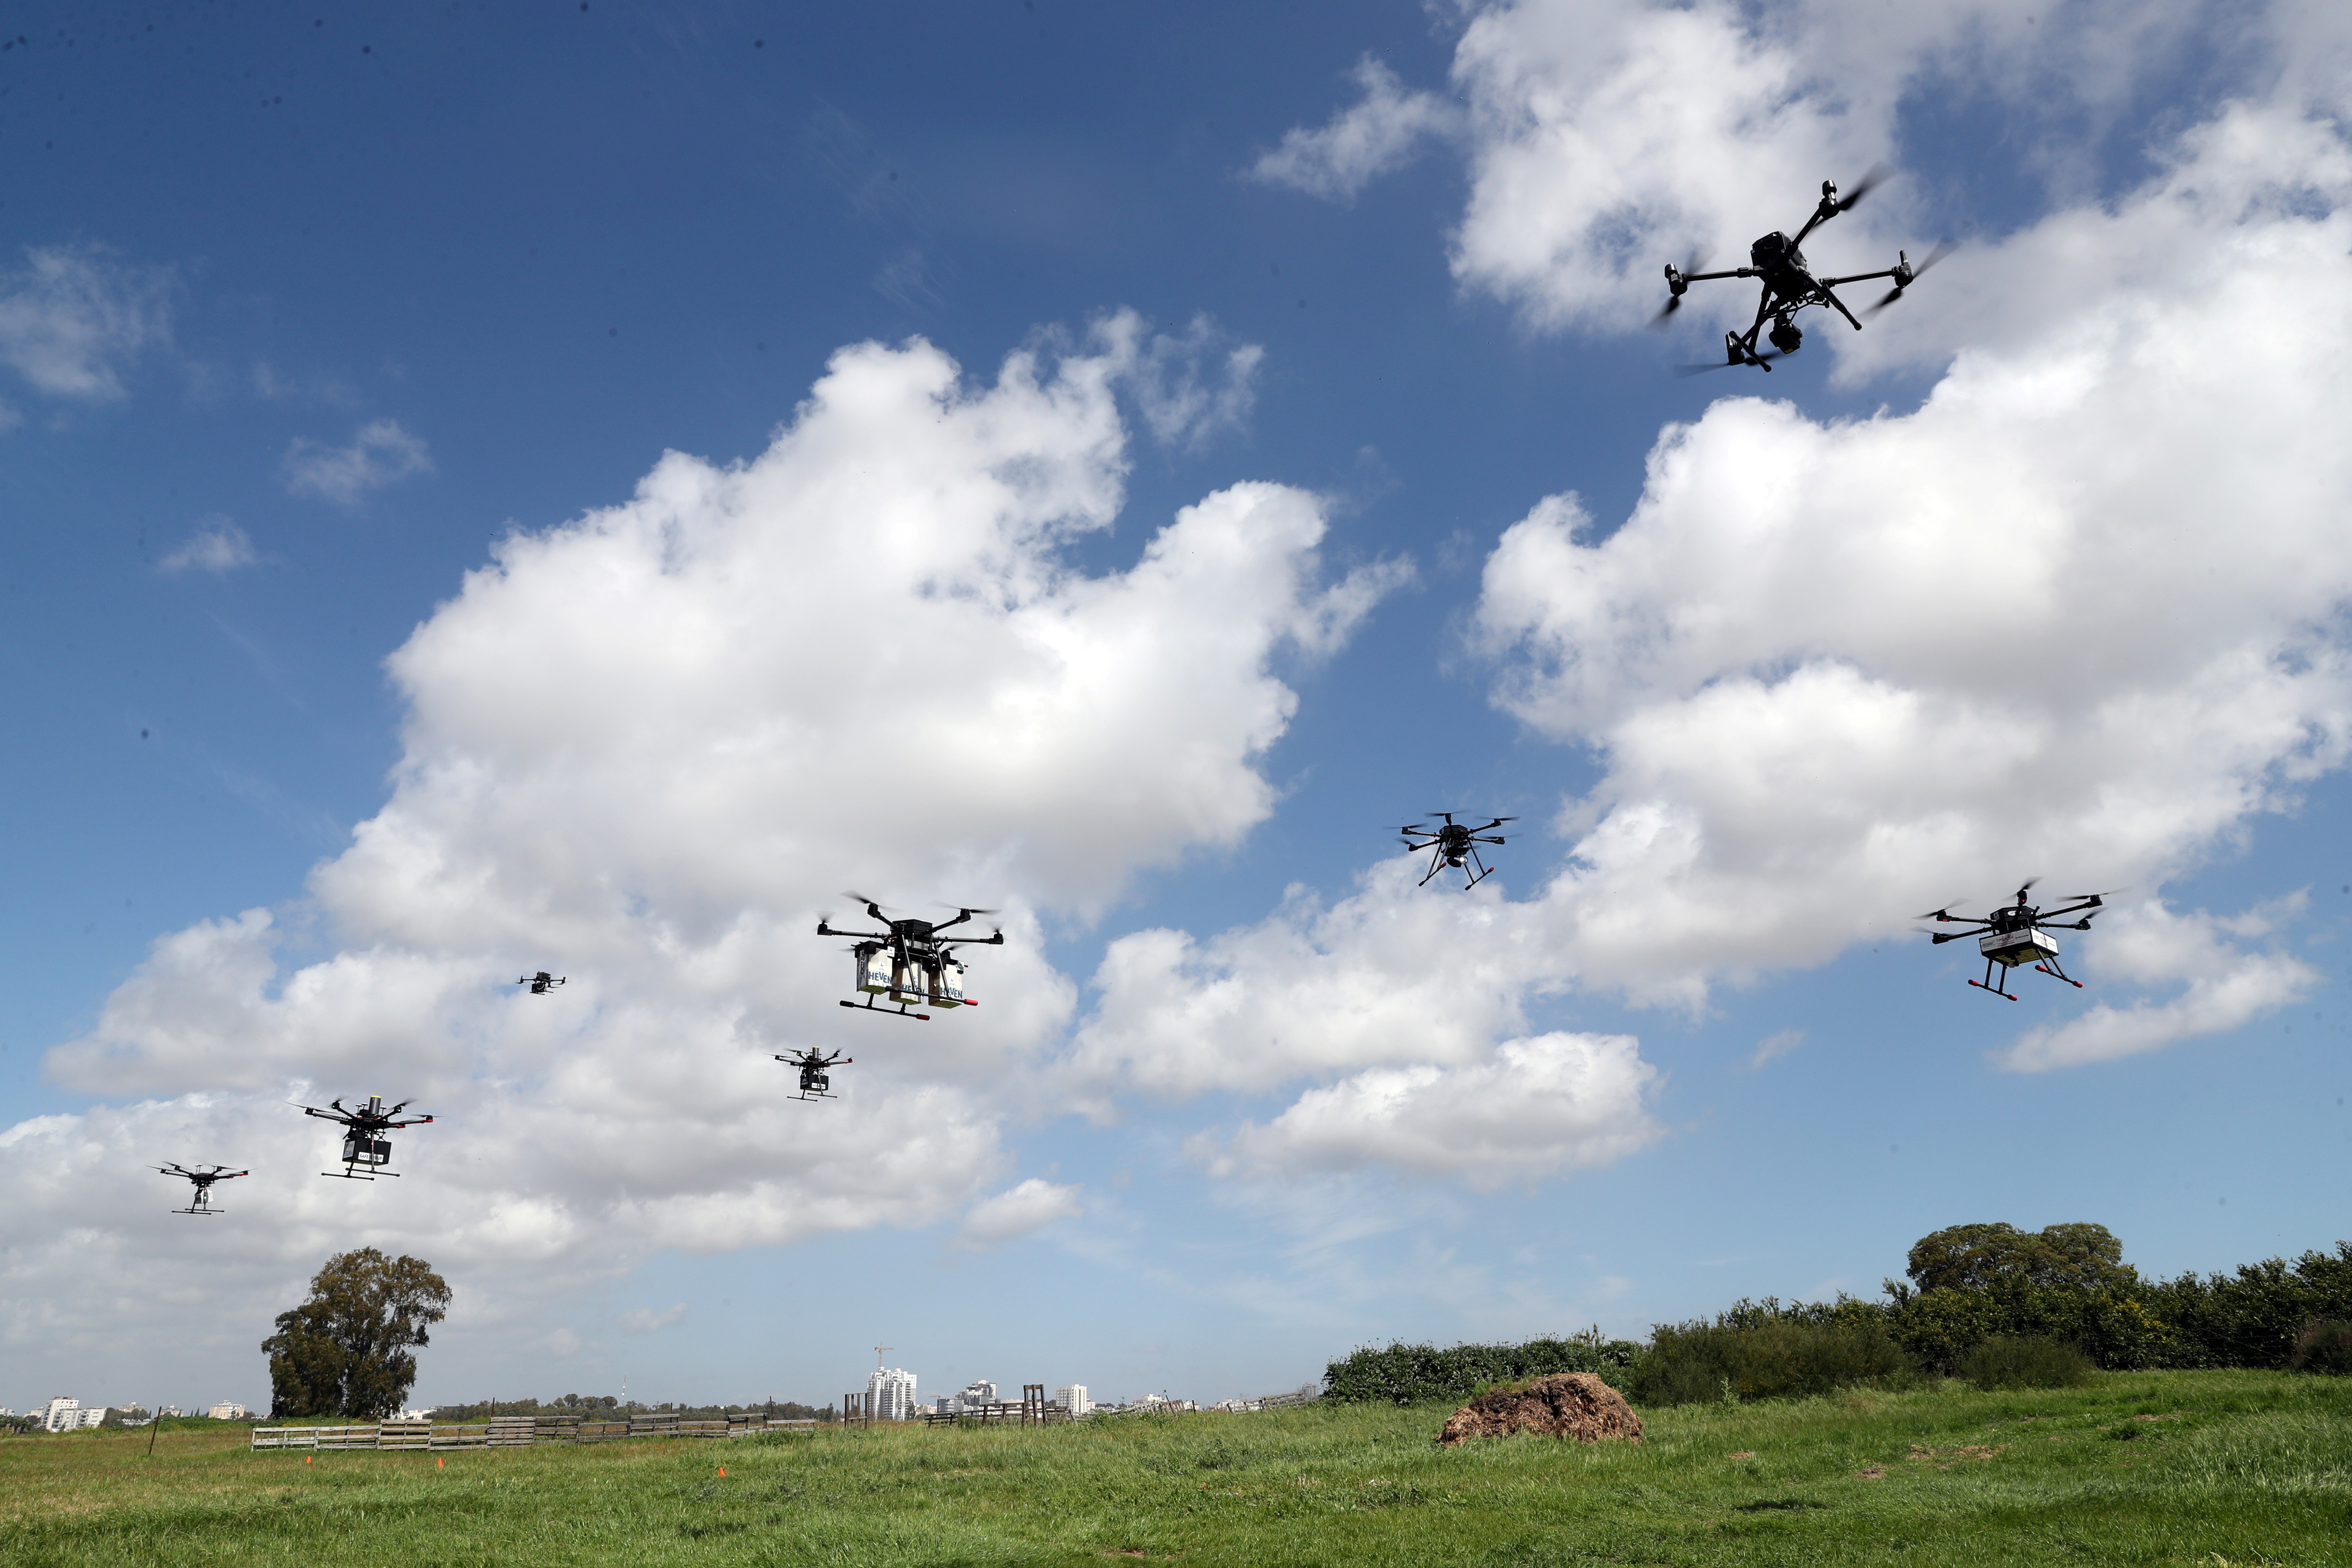 Delivery drones are seen midair during a demonstration whereby drones from various companies flew in a joint airspace and were managed by an autonomous control system in Haifa, in an open area near Hadera, Israel March 17, 2021. REUTERS/Ronen Zvulun - RC20DM9EY4TX